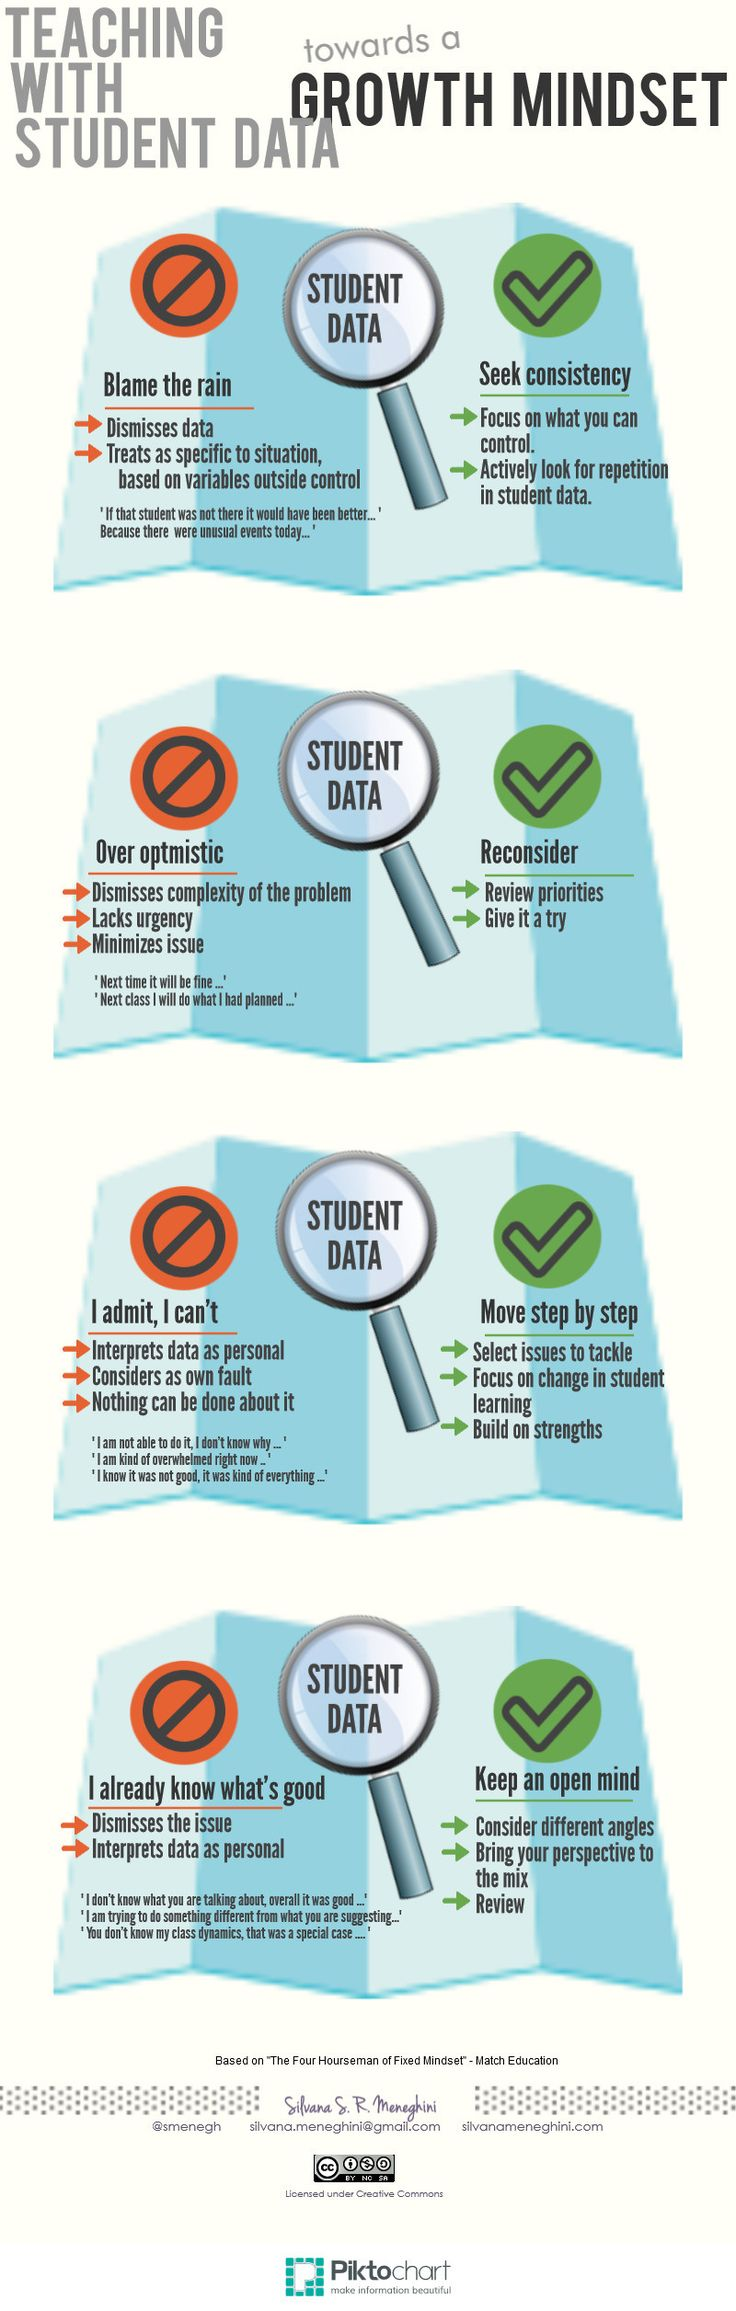 Teaching Based on Student Data - Growth Mindset